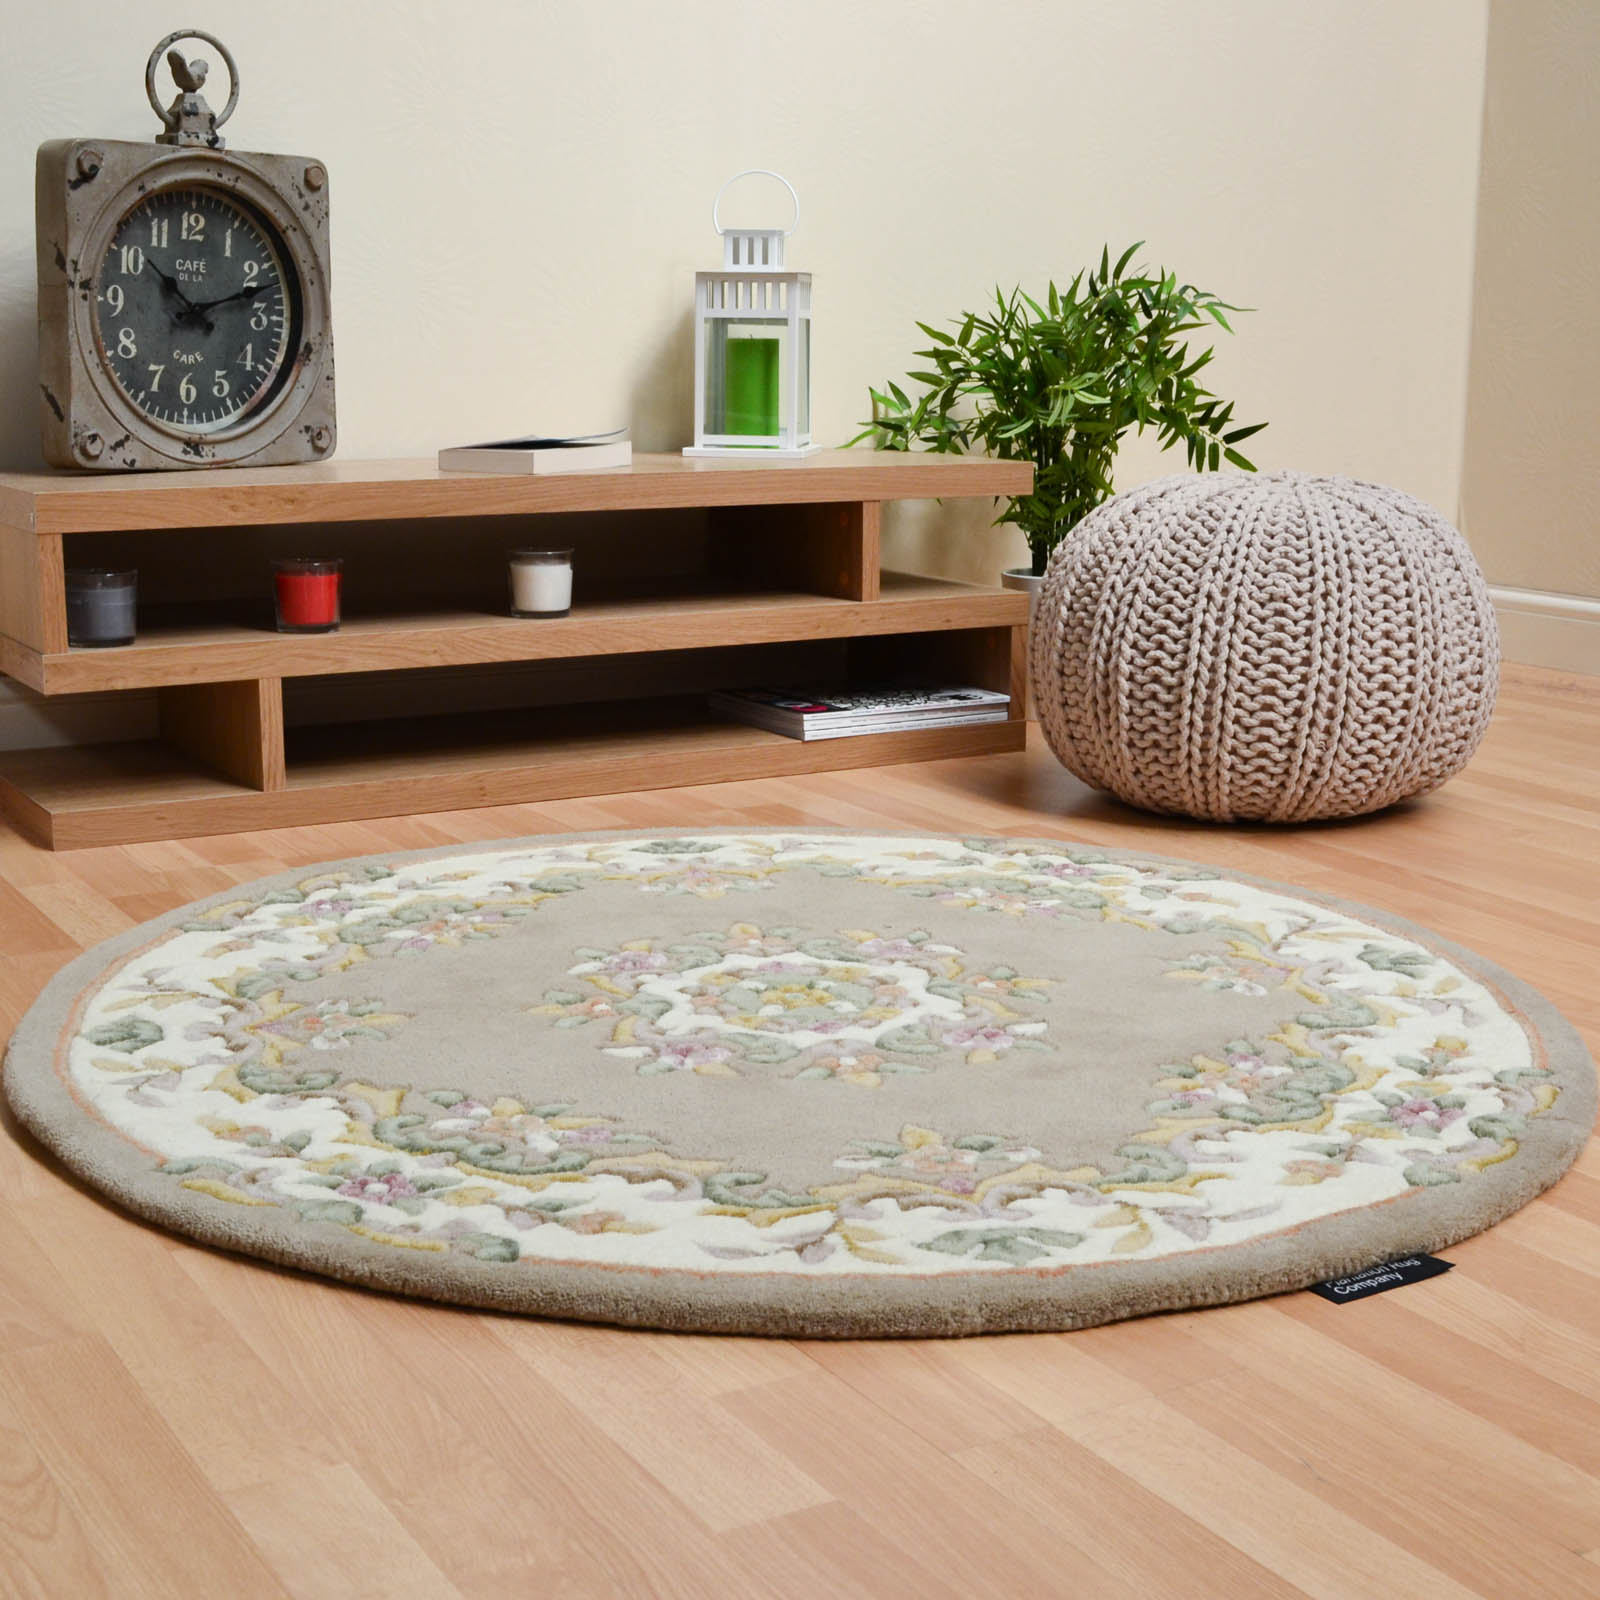 Jewel Circular Wool Rugs in Beige Ivory